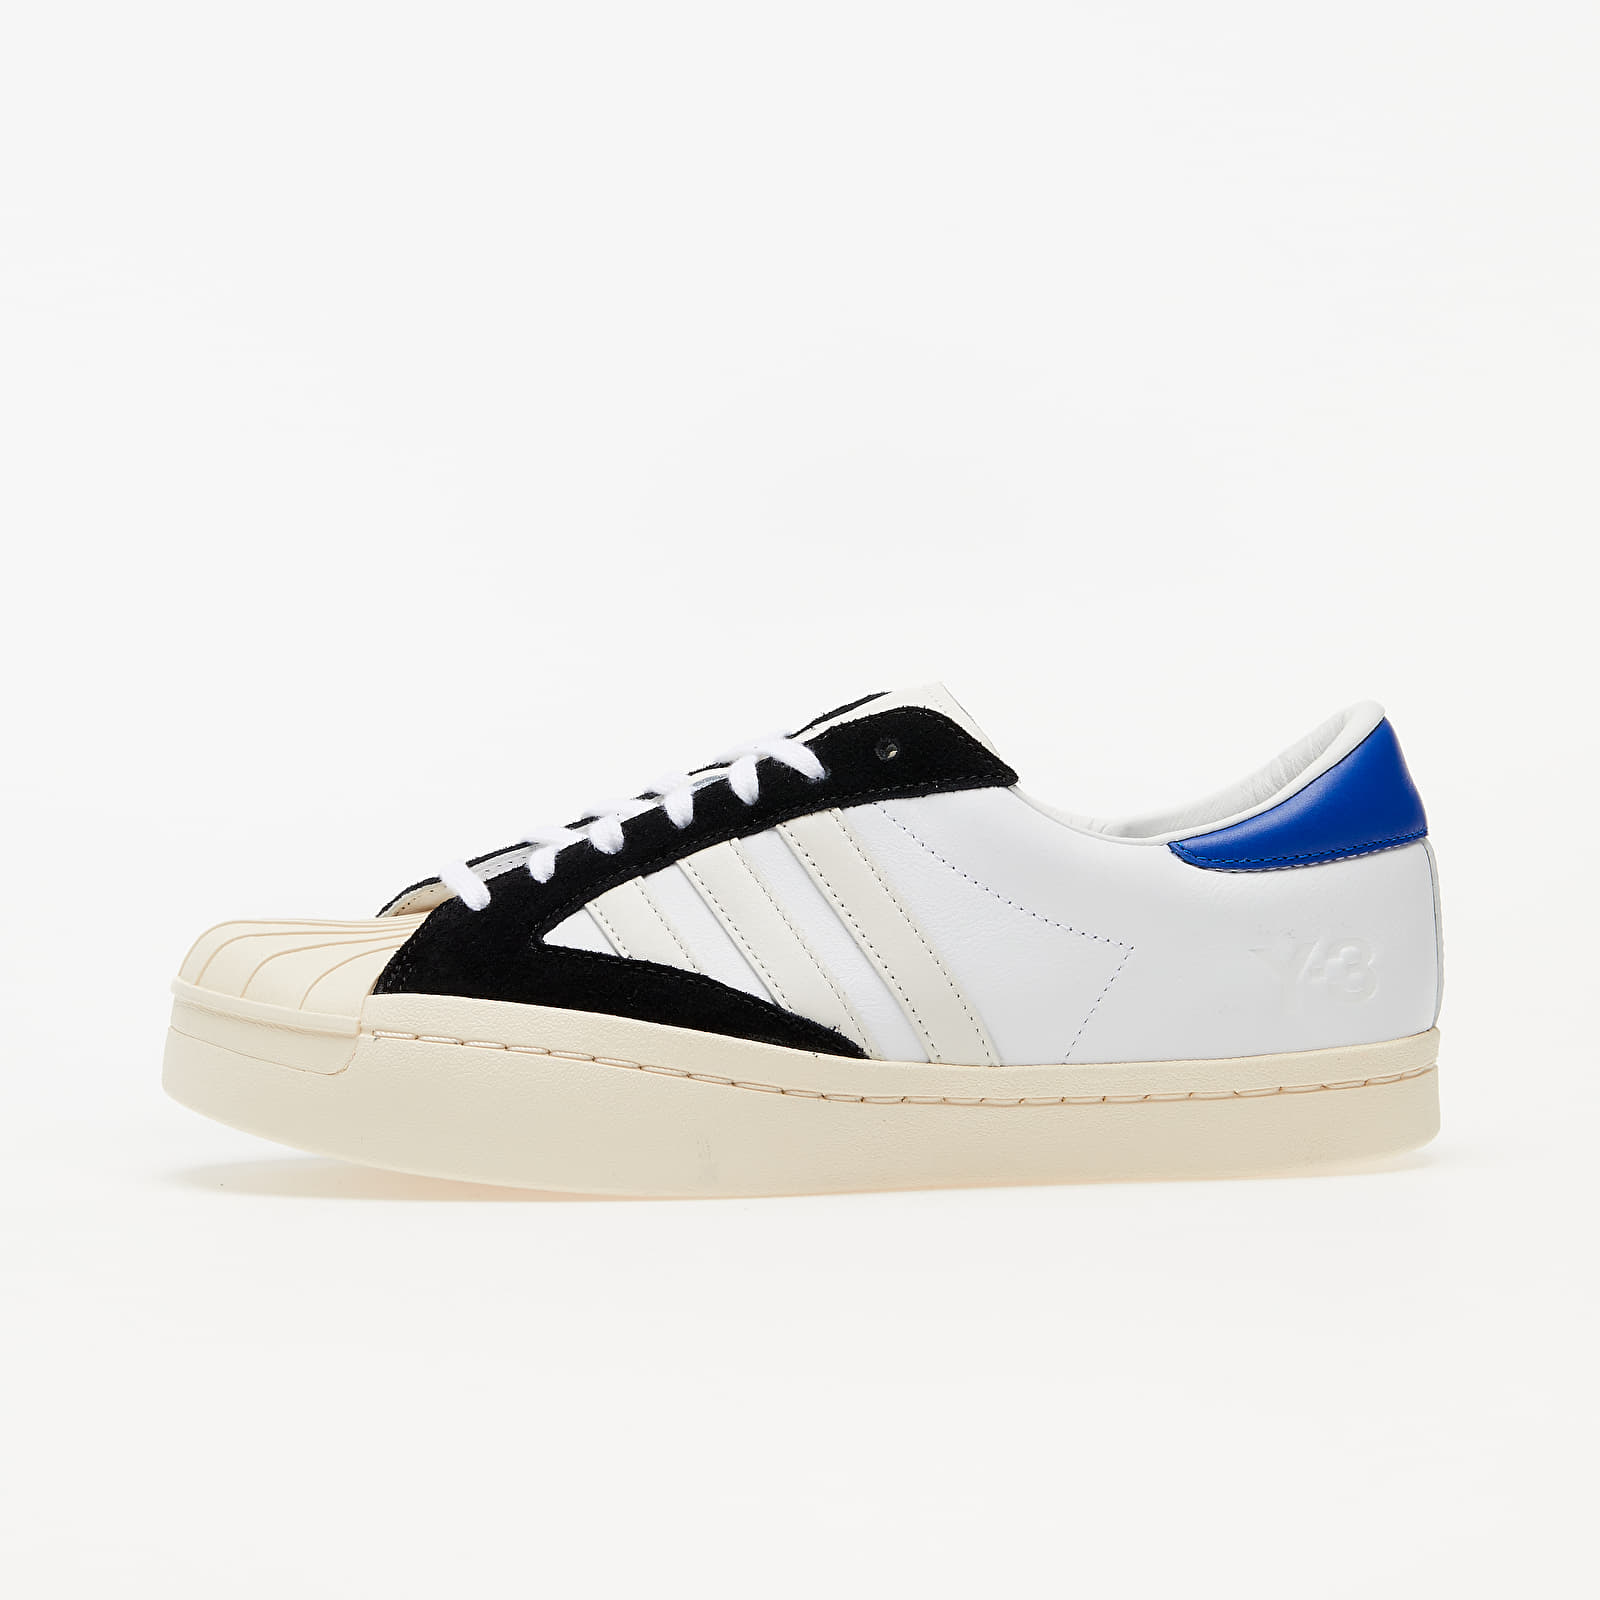 Chaussures et baskets homme Y-3 Yohji Star Ftwr White/ Chalk White/ Blue